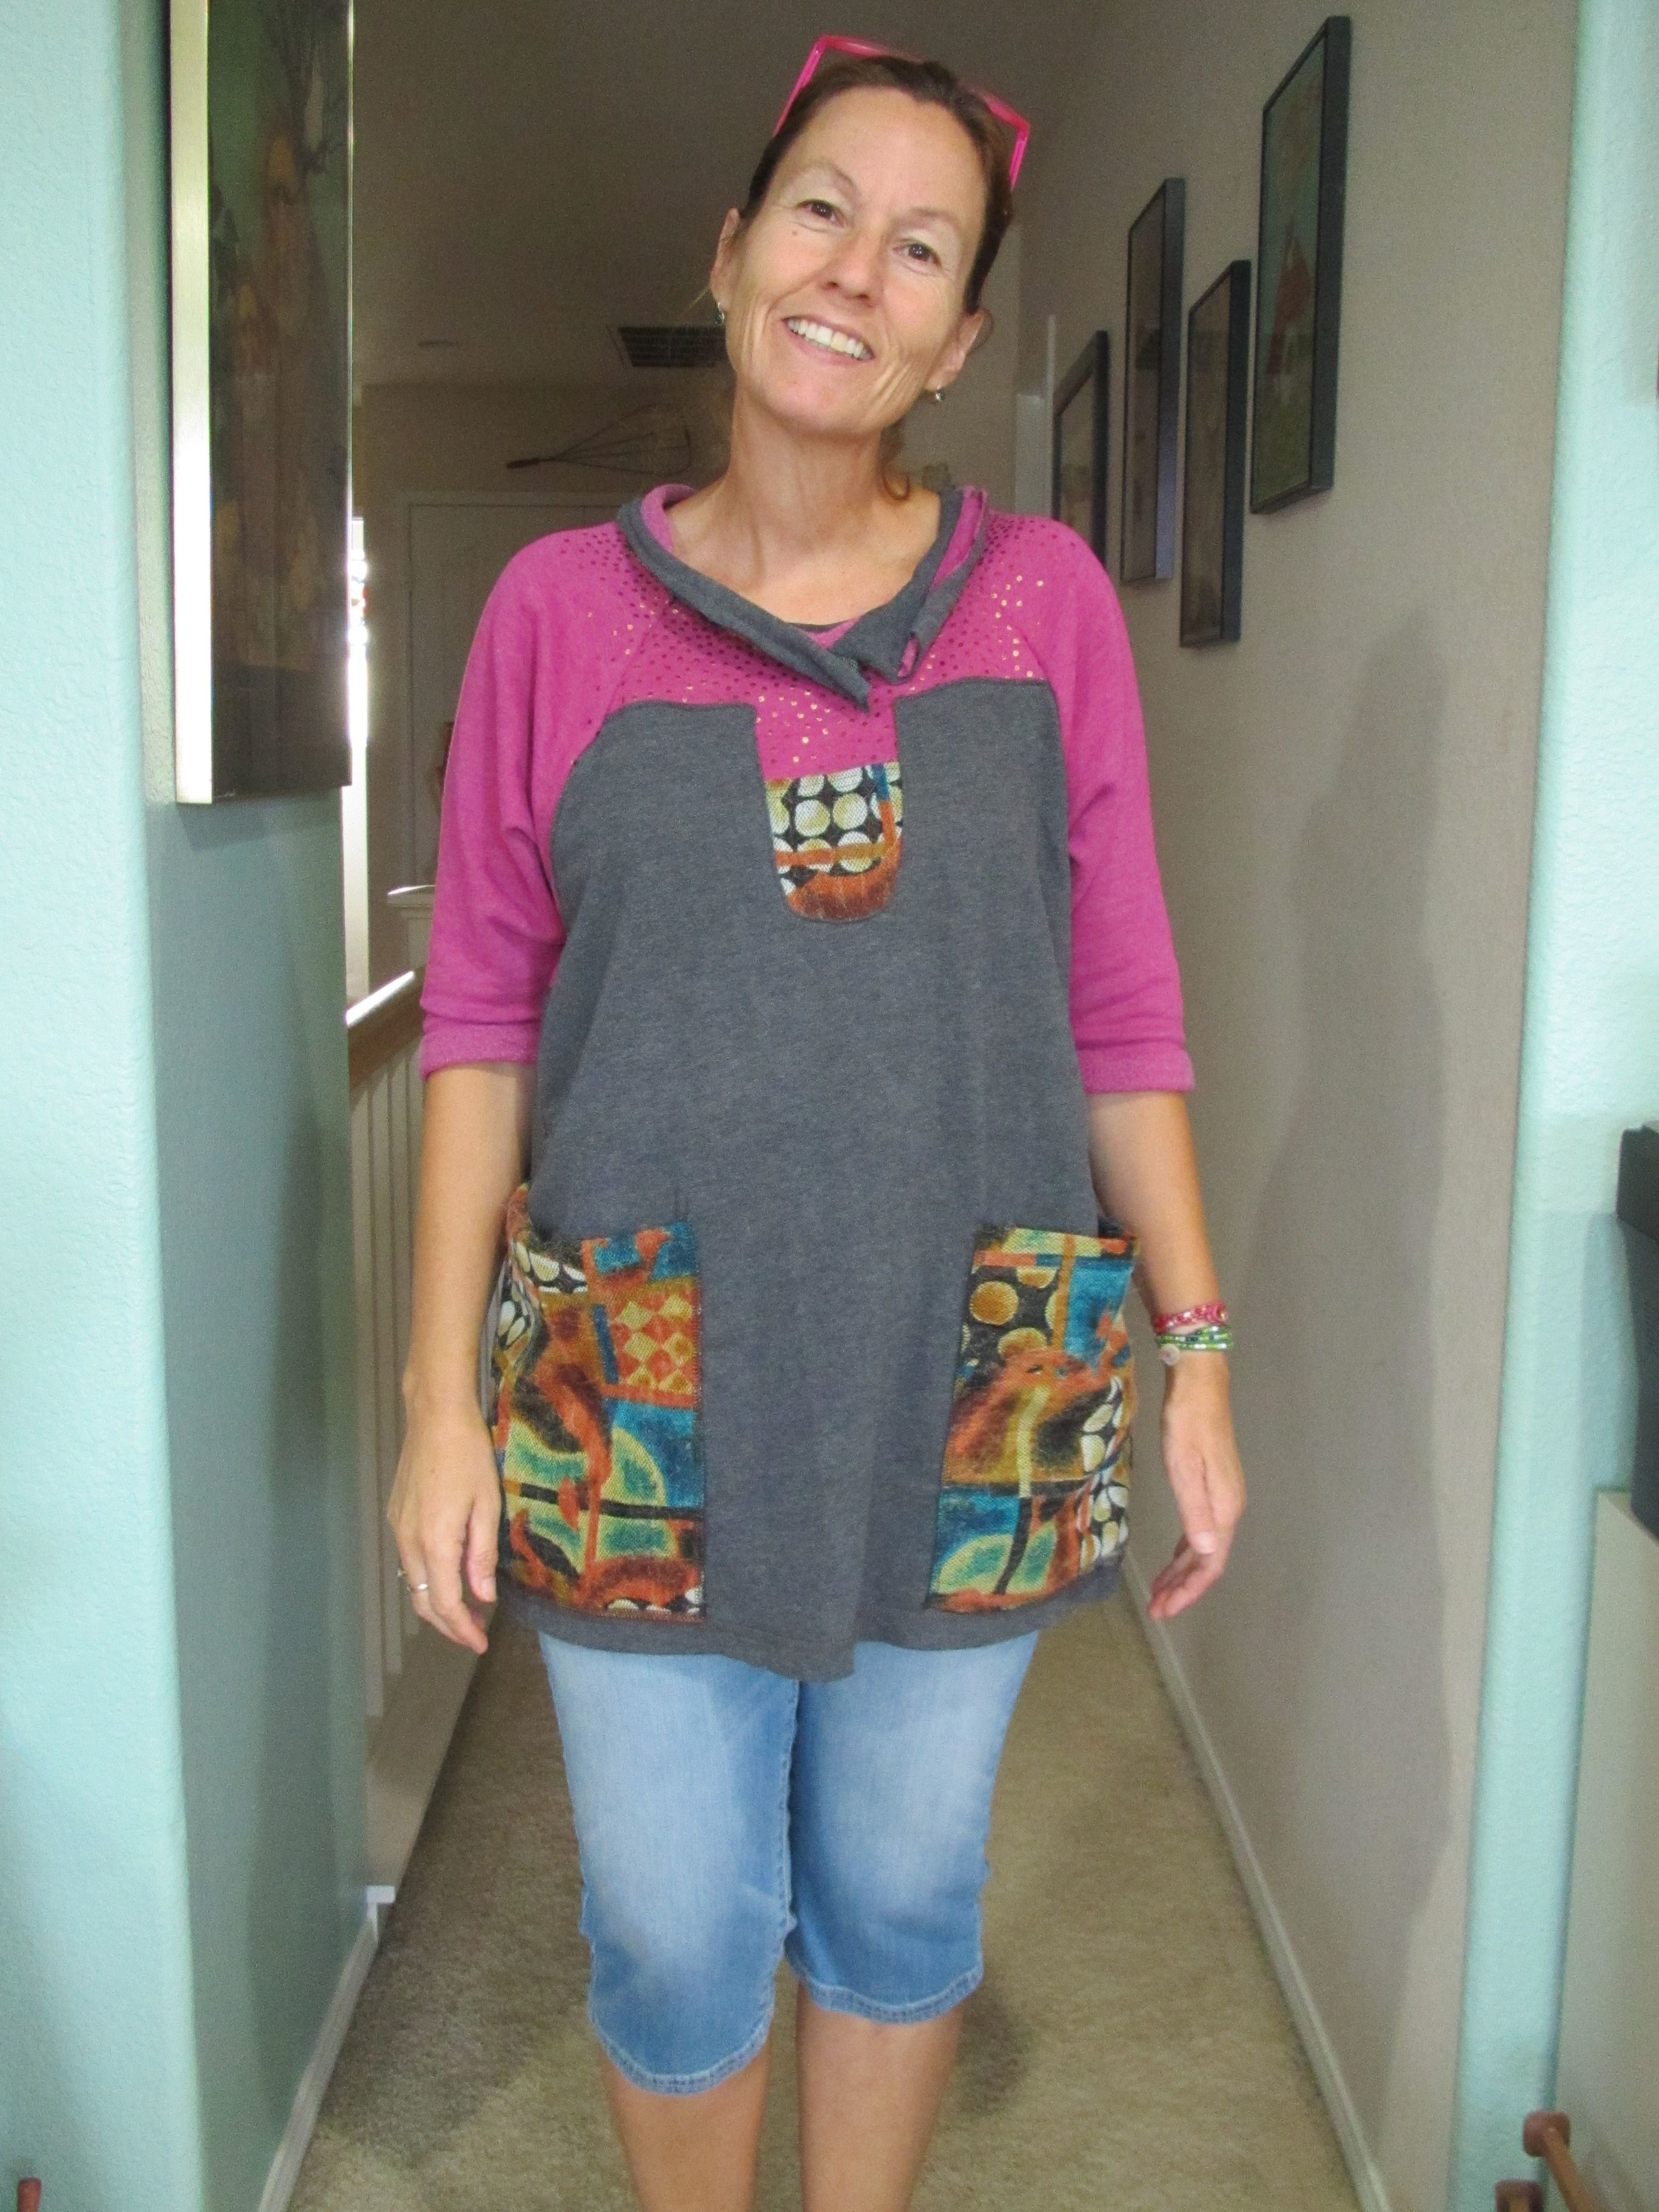 made this tunic from two thrifted shirts and 1/4 yd of colorful fabric.  This was inspired by a pinterest pin by Diane Ericson.